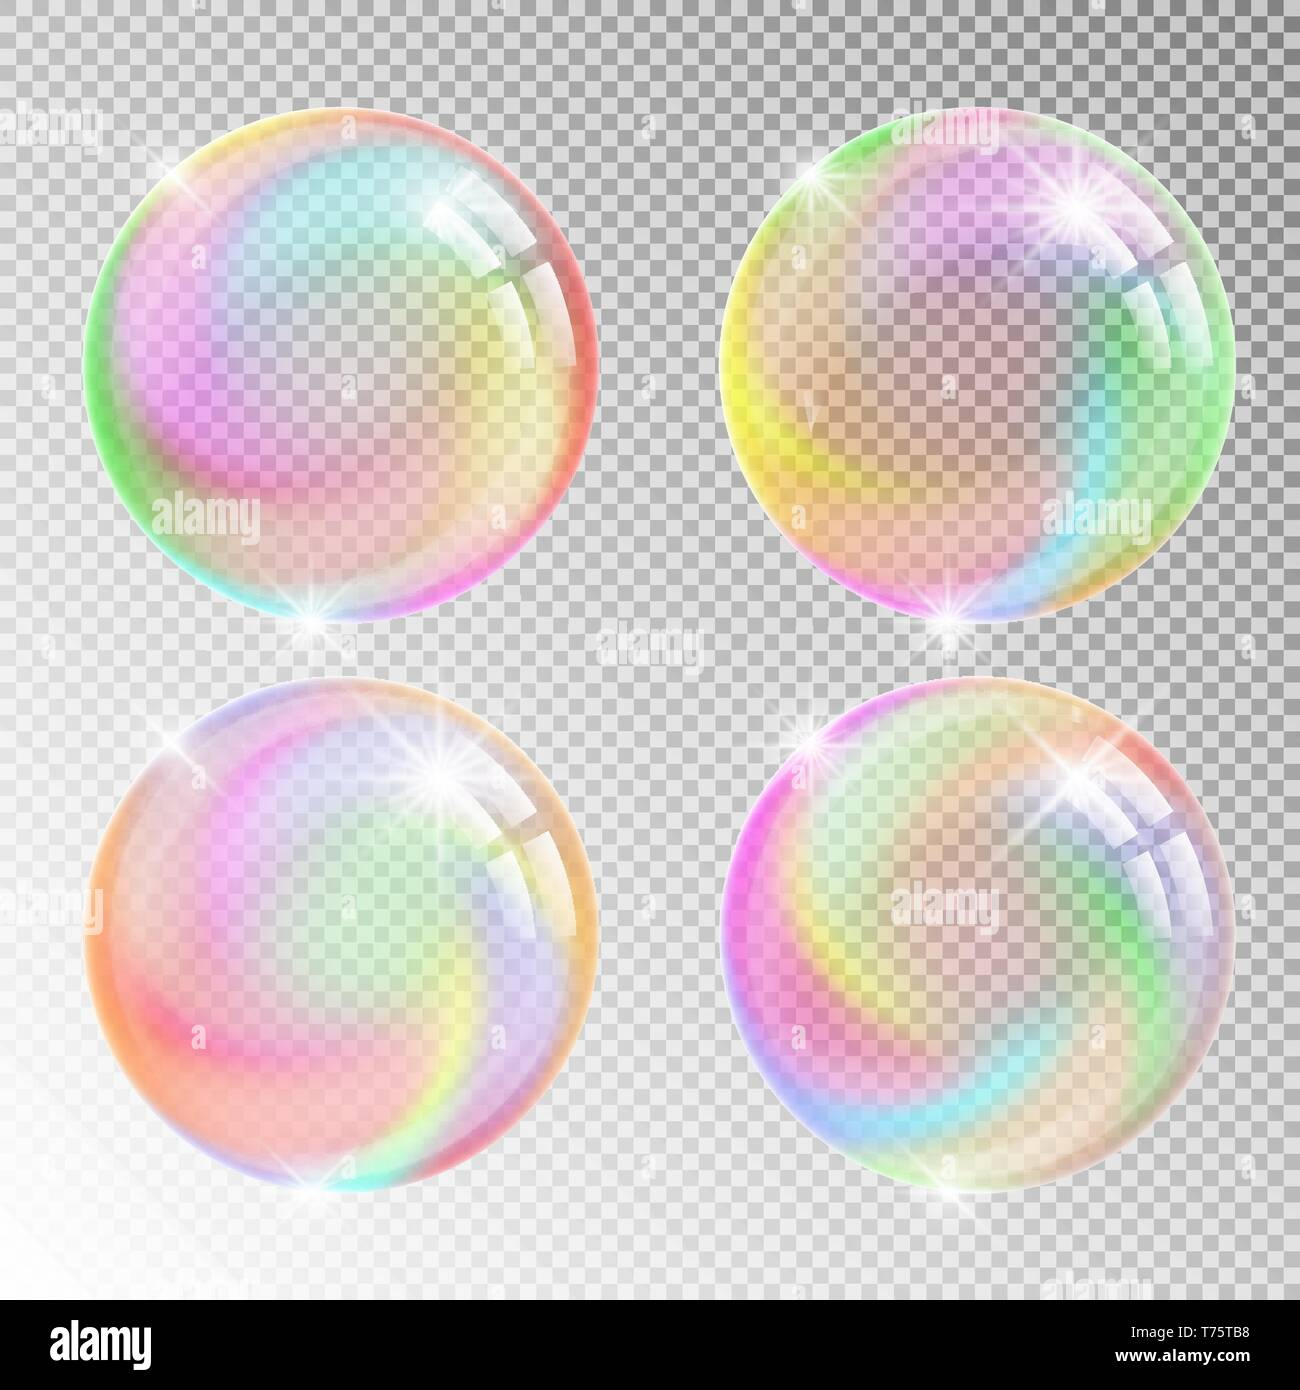 Colorful soap bubbles. Vector illustration with transparent background. - Stock Vector